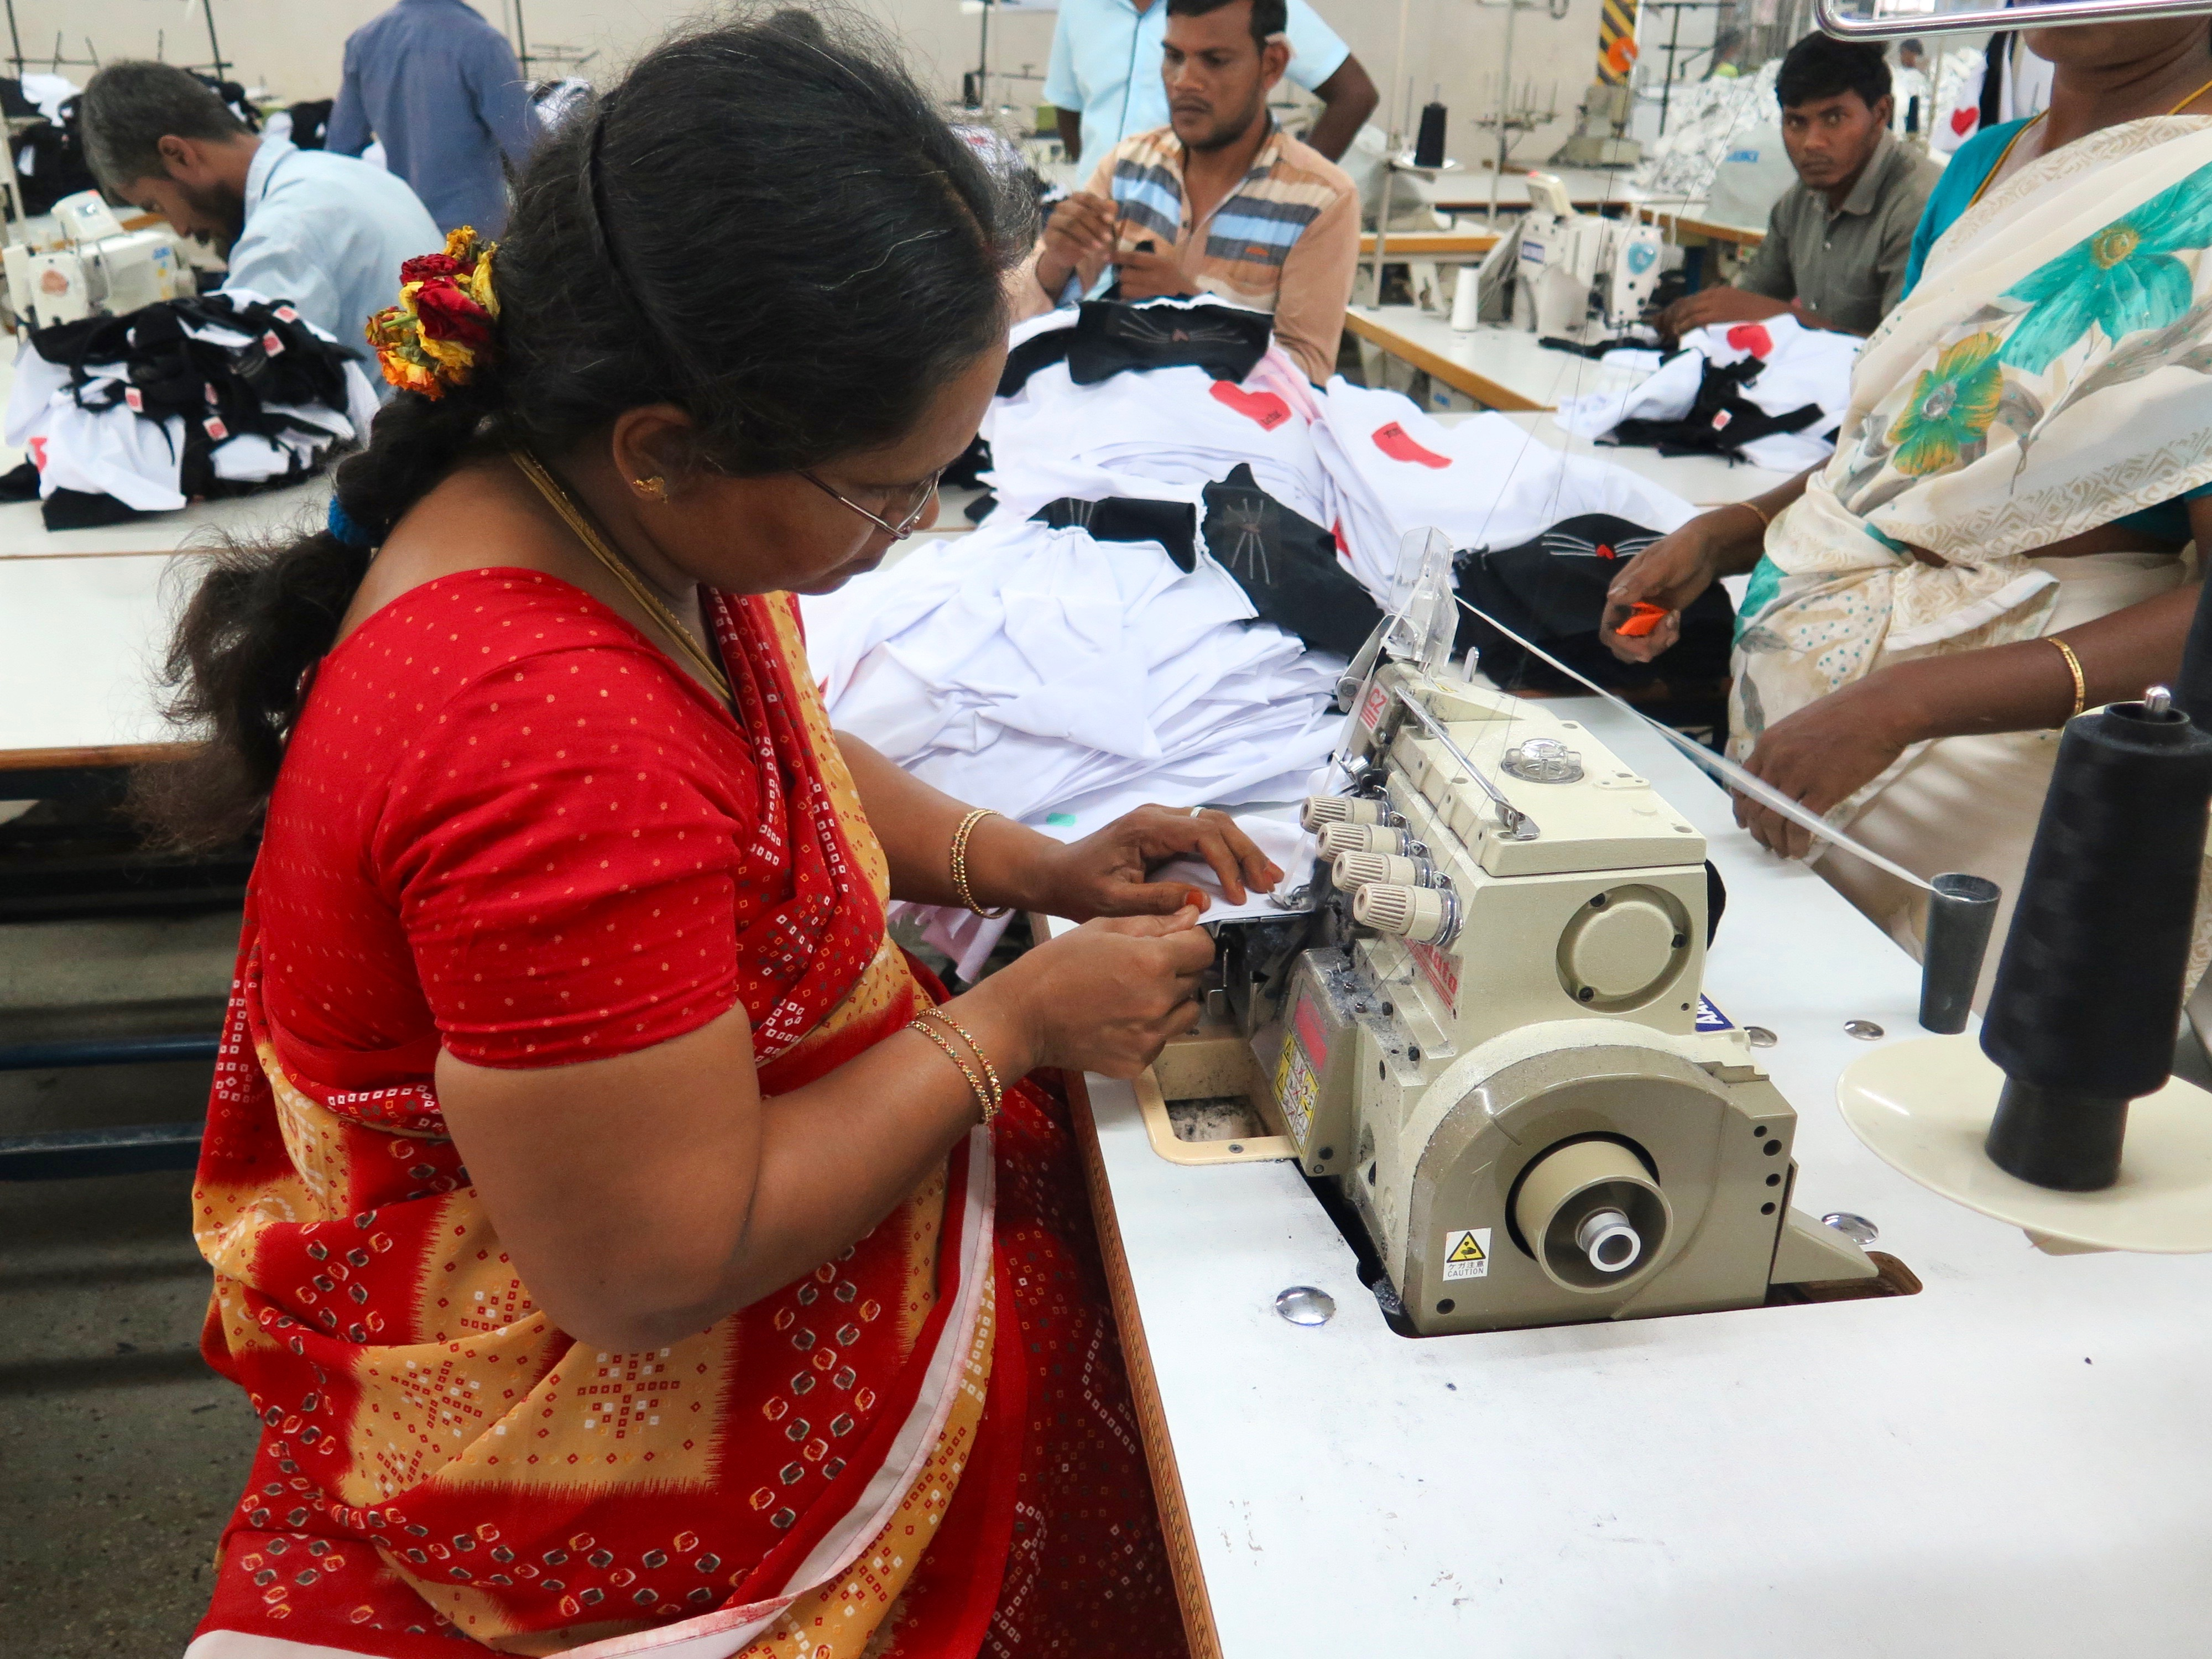 Garment workers forced to have sex